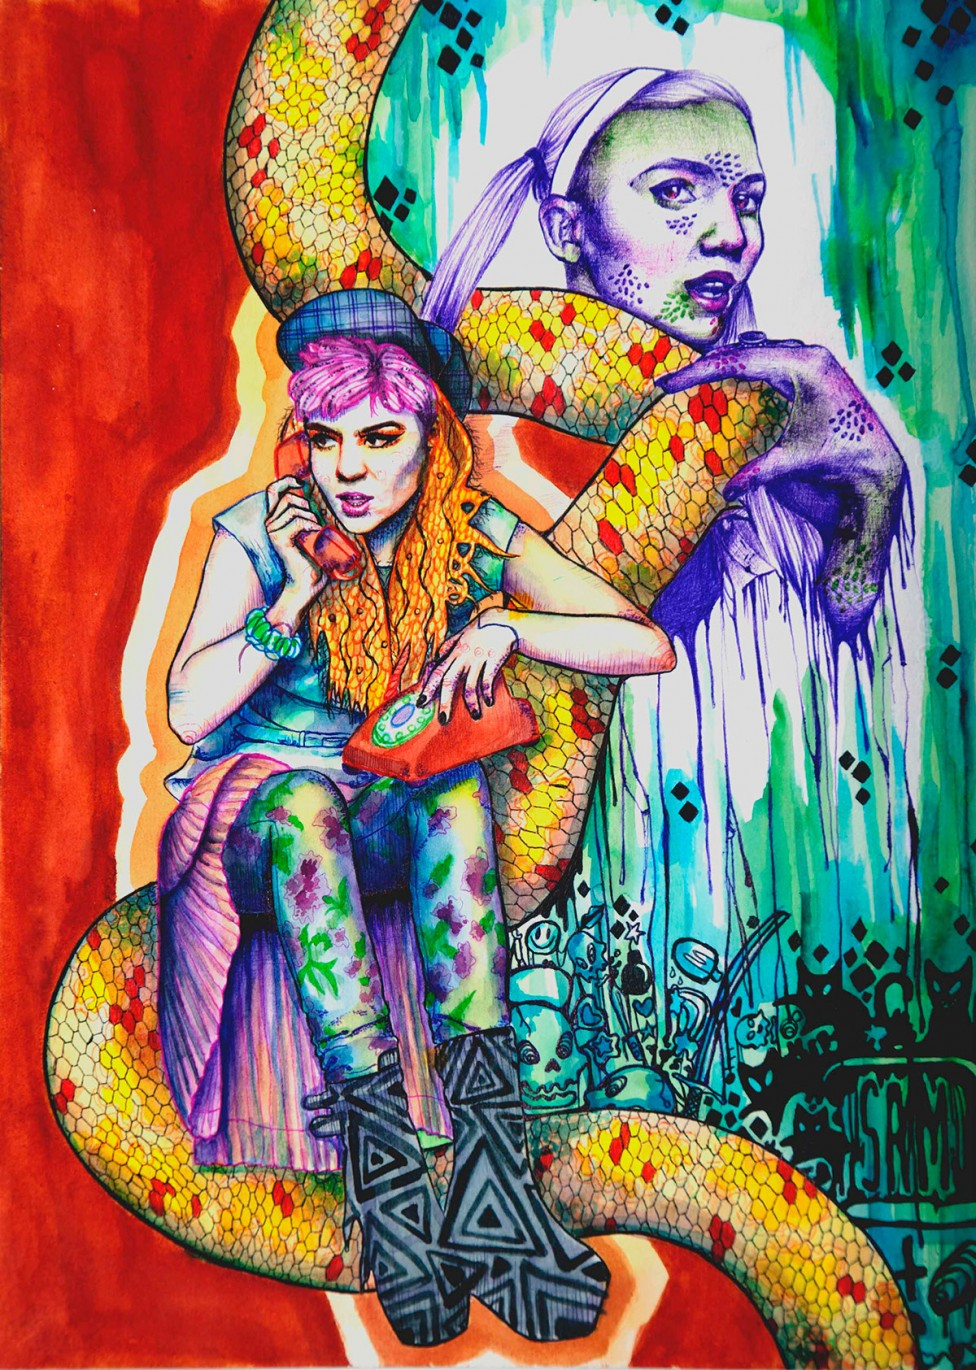 Various Artists Illustrate These Stunning Portraits Of Singer Grimes